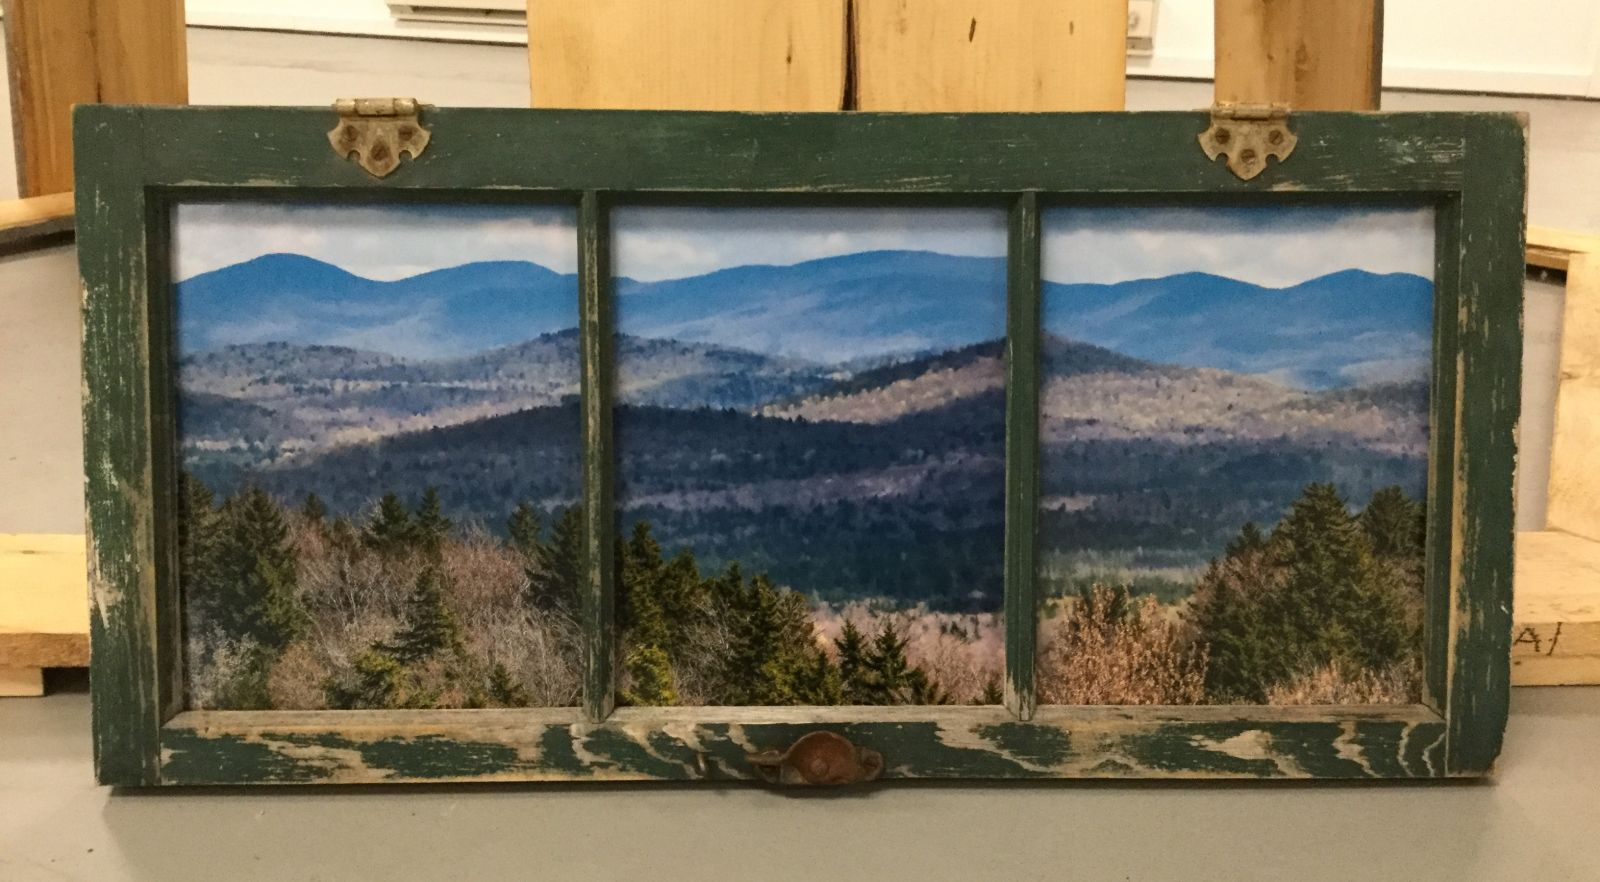 This repurposed window frame creates a perfect setting for the landscape view the artist has created.